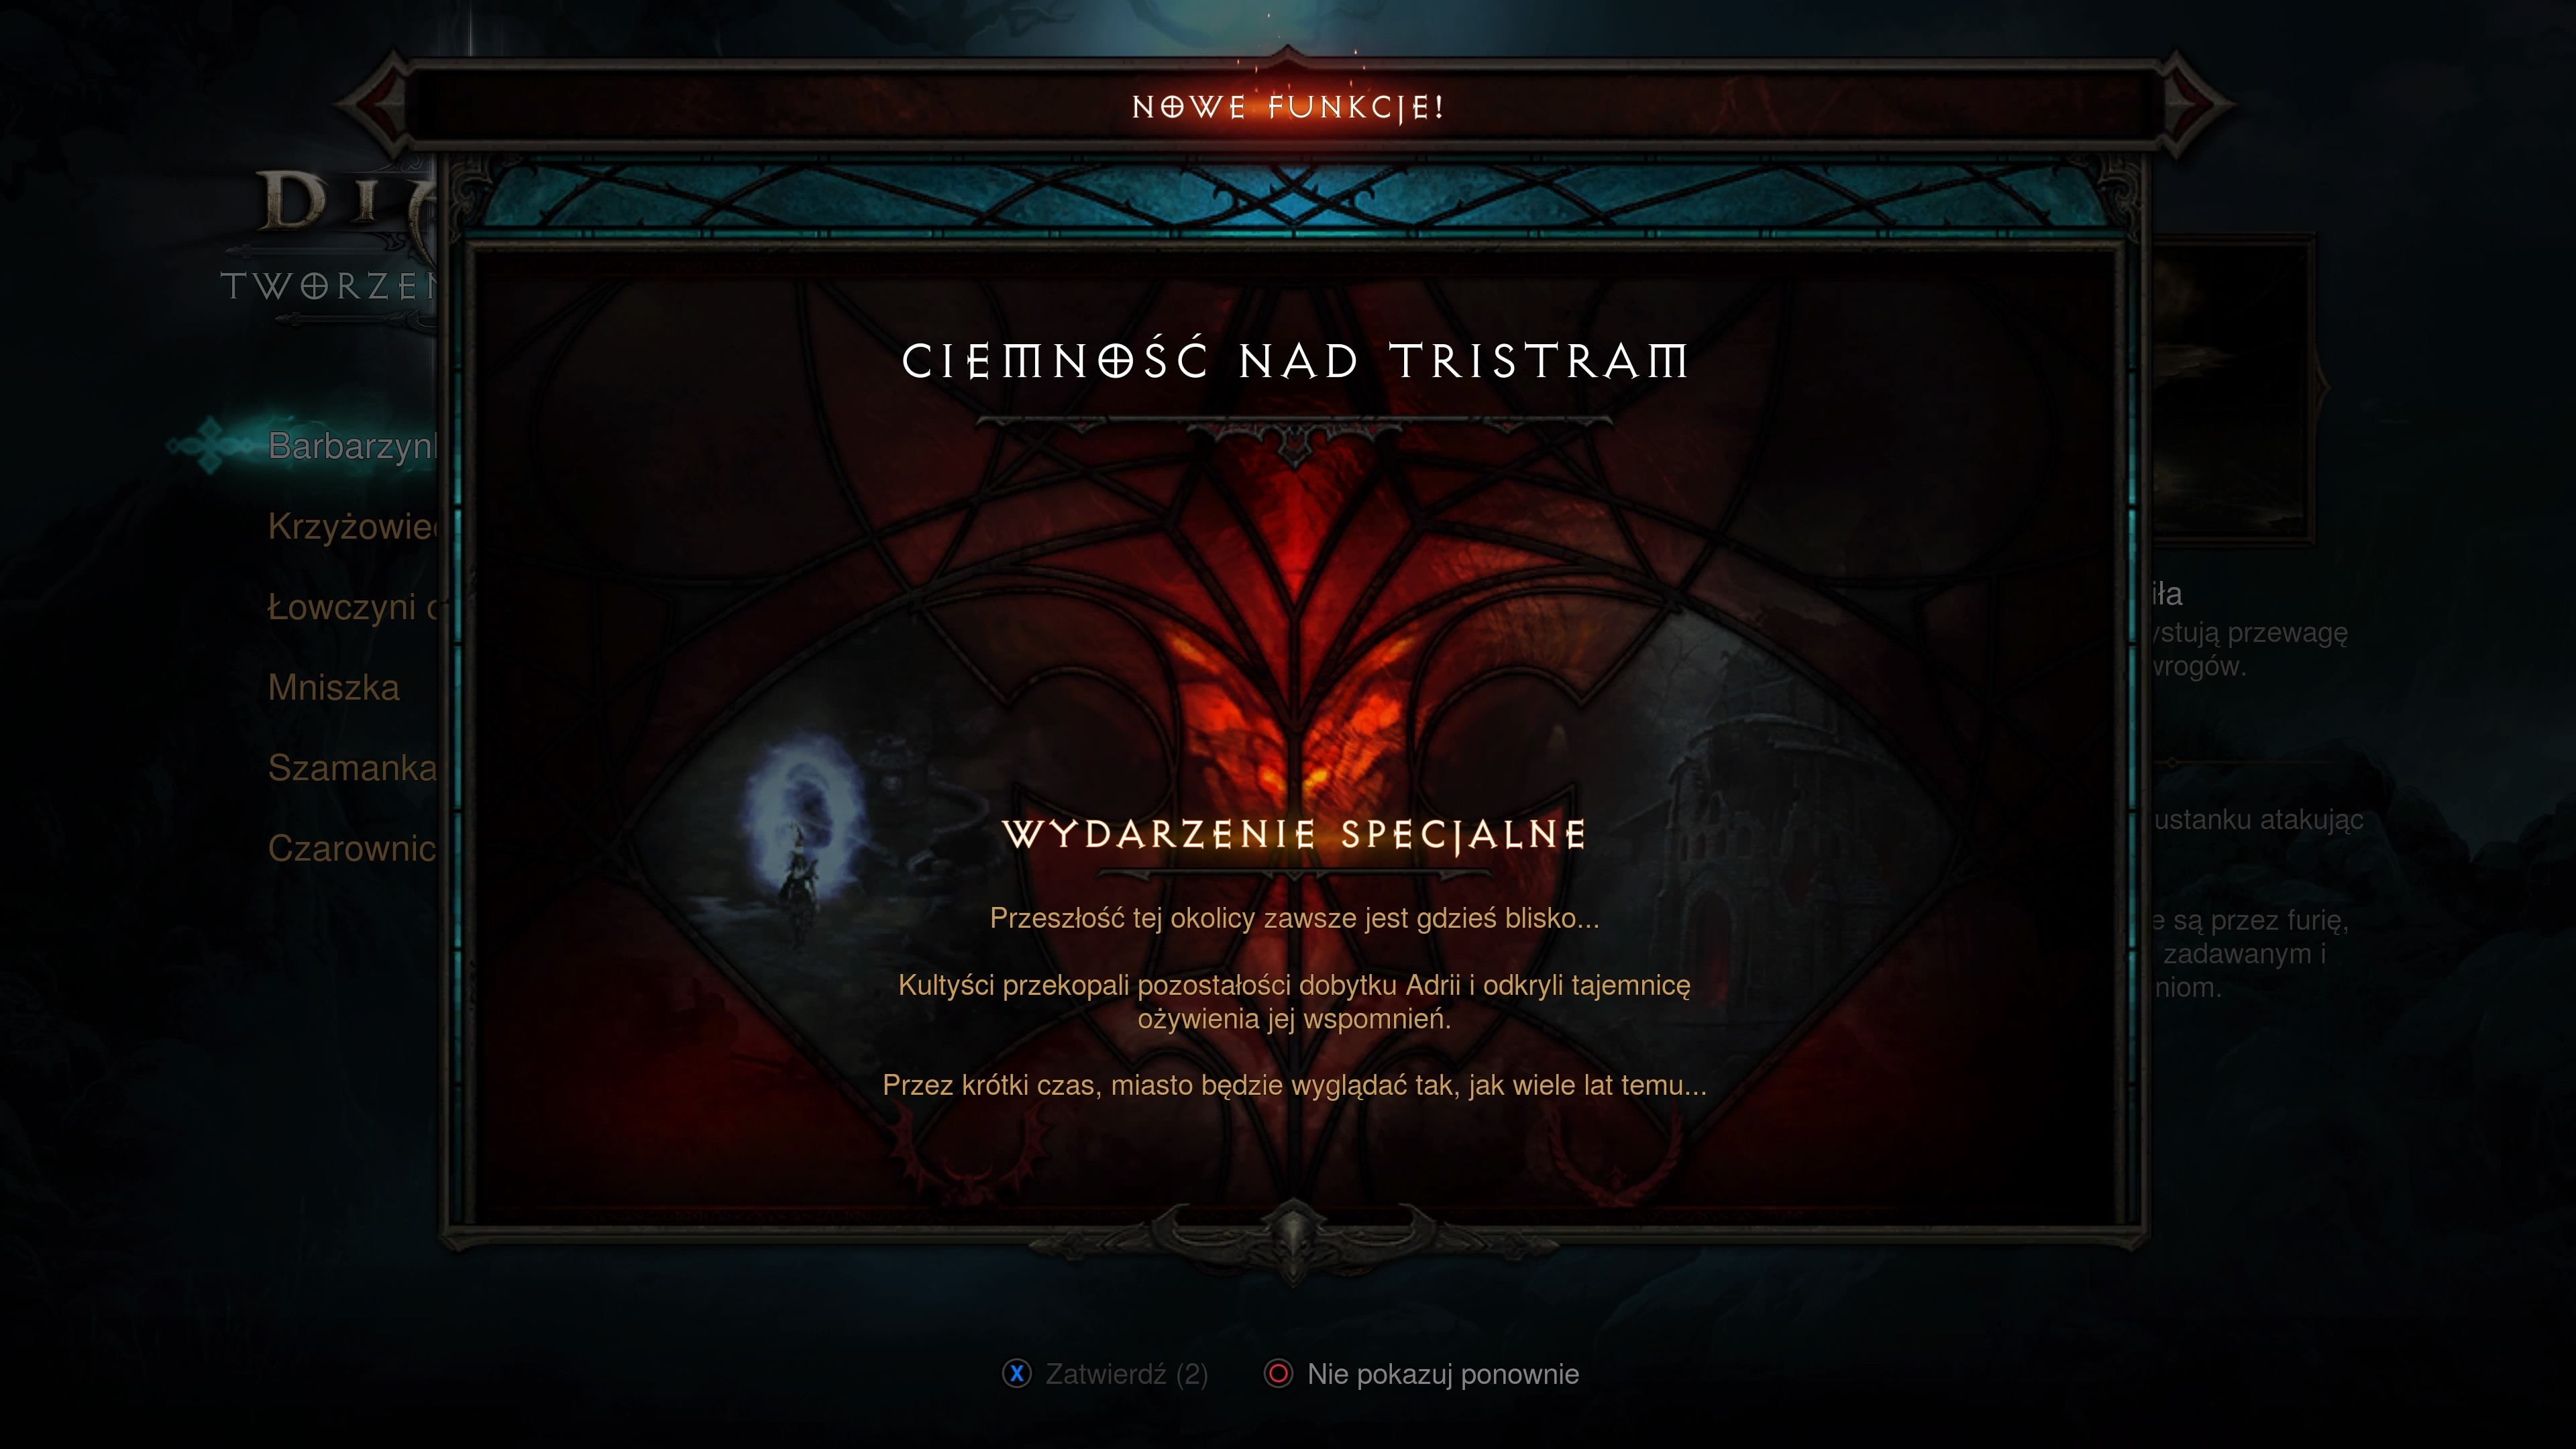 how to play diablo 3 on ps4